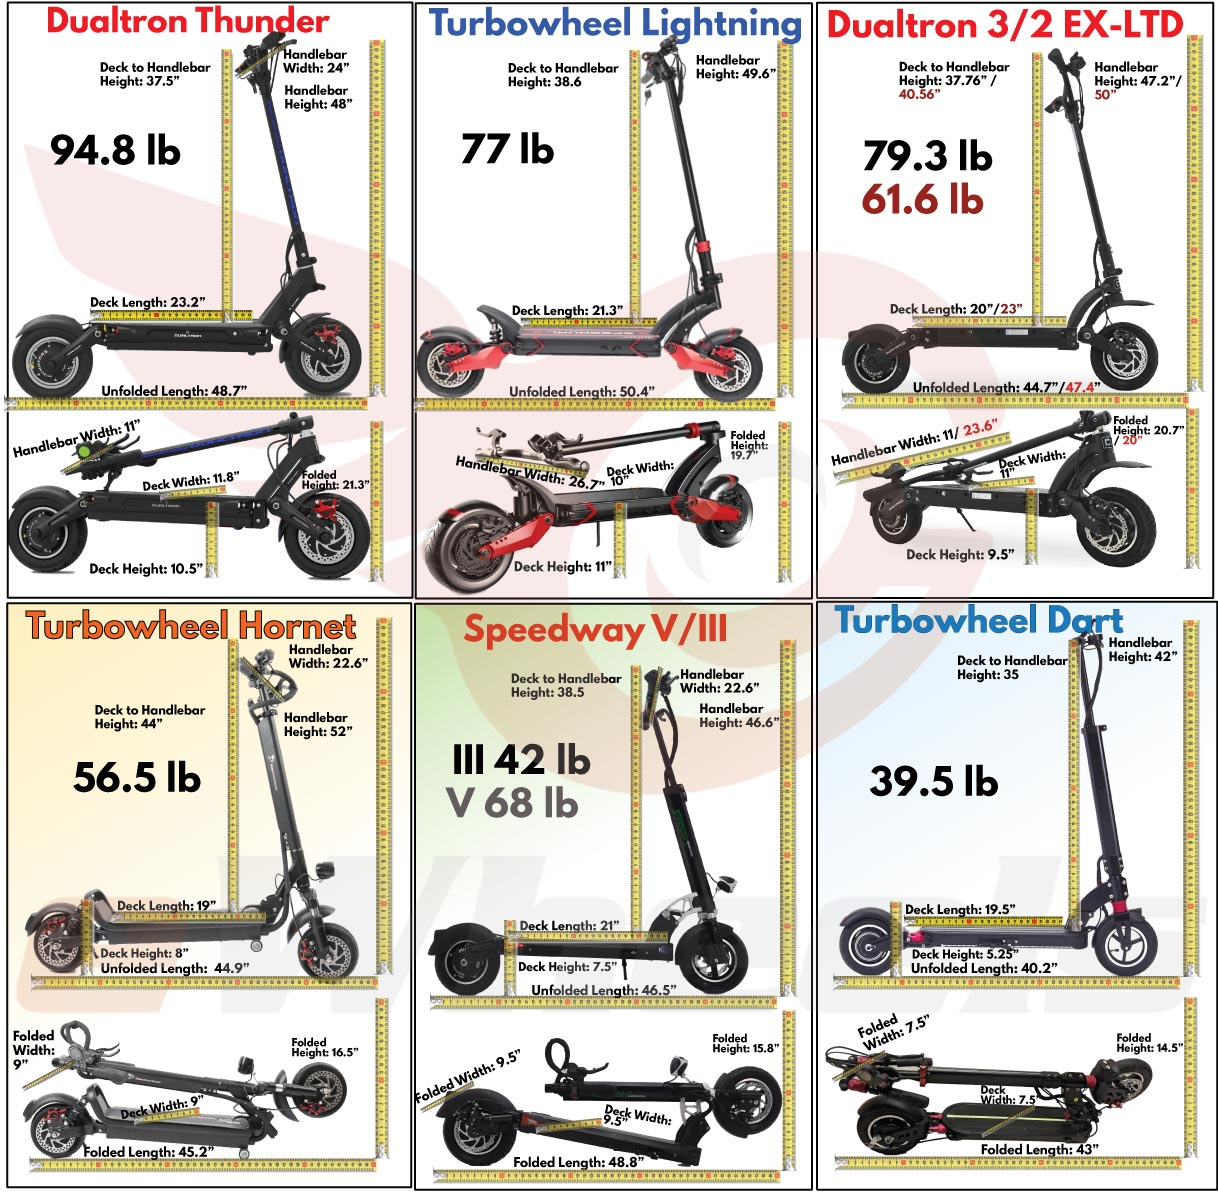 Electric Scooter Dimensions & Weight Comparison Summary Graphic, v1.3